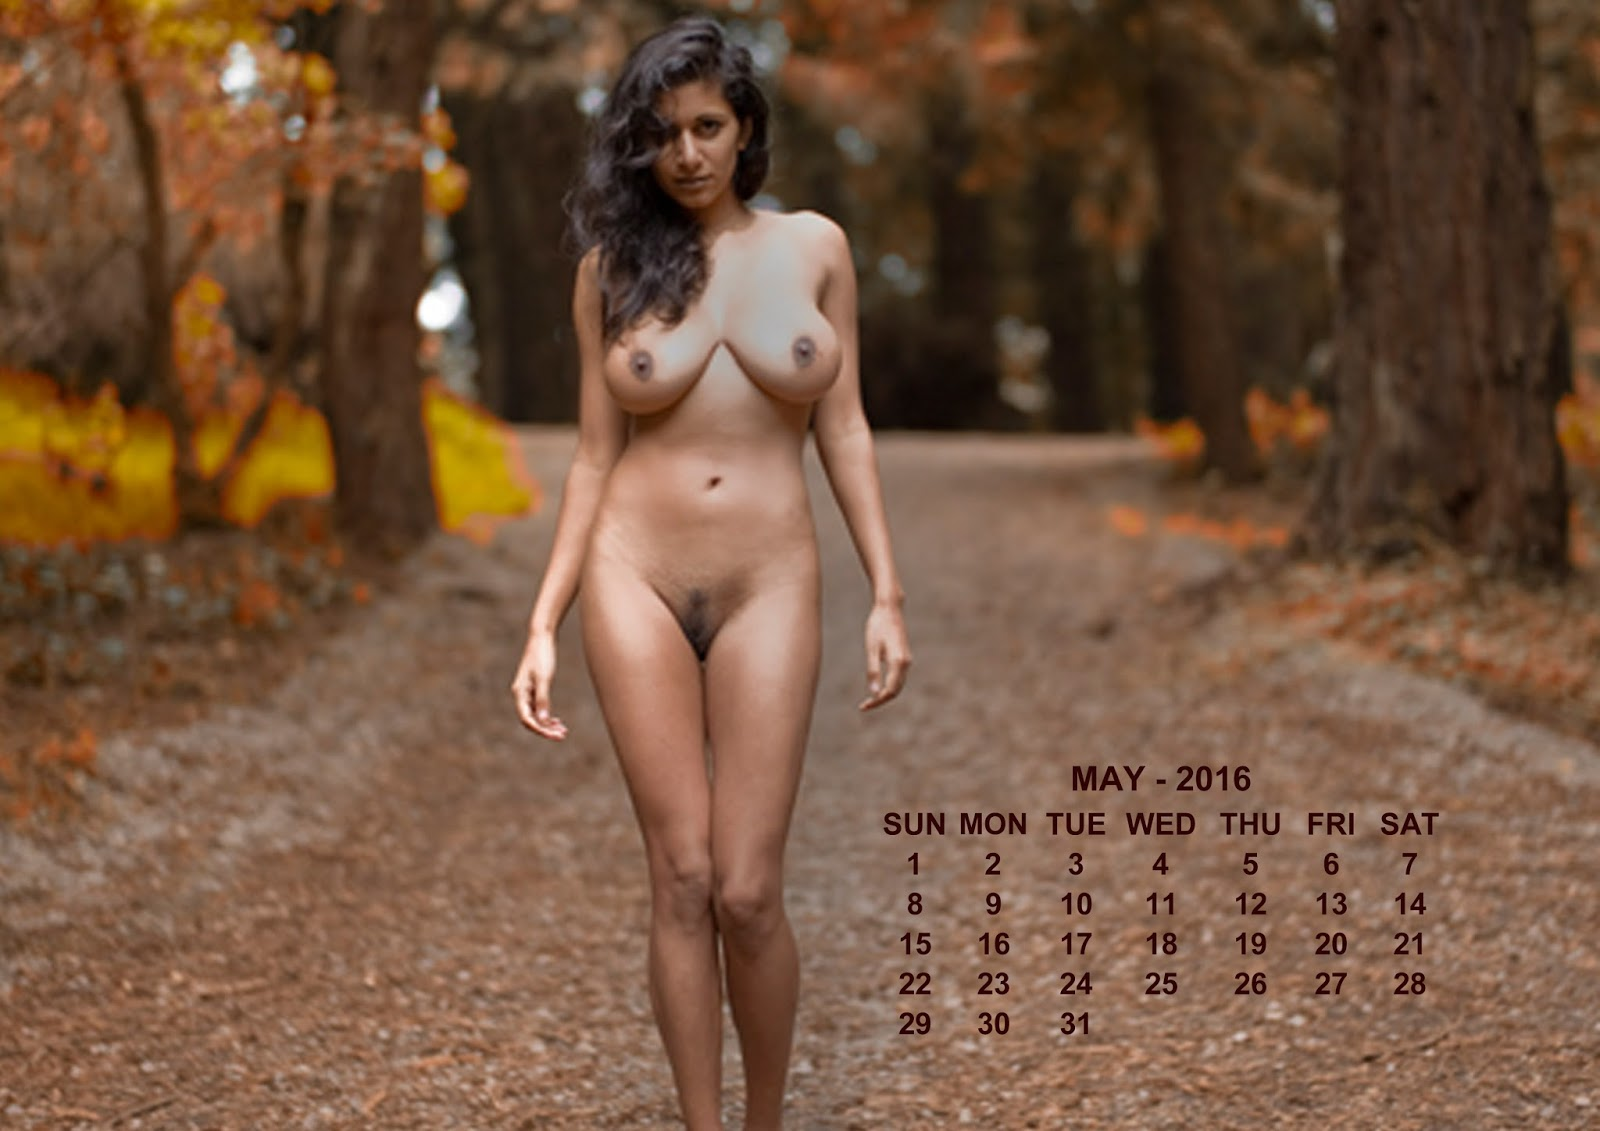 nude calendar ladies world's